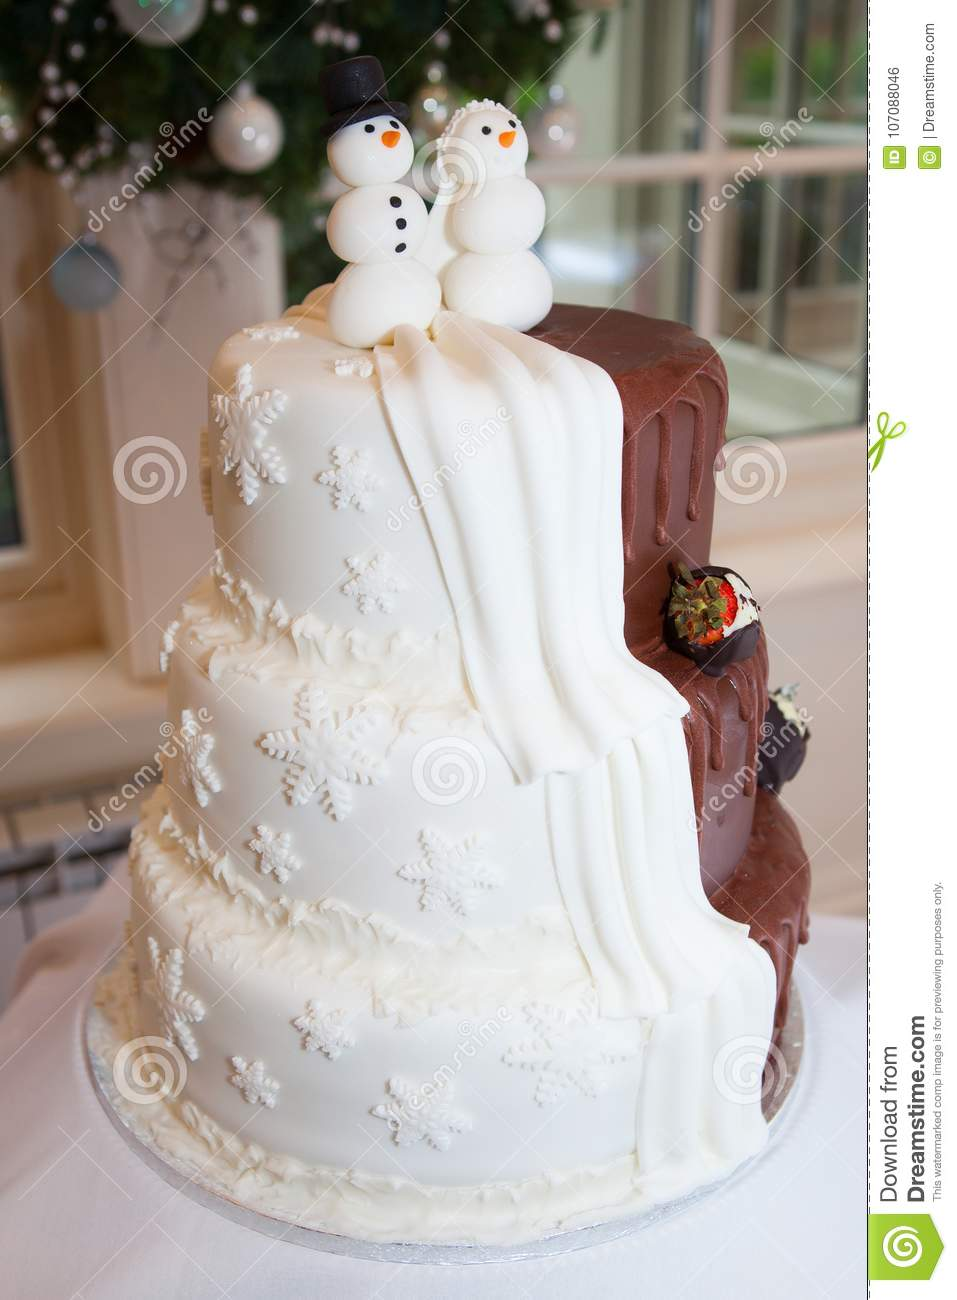 A Winter Themed Wedding Cake Stock Photo - Image of themed ...